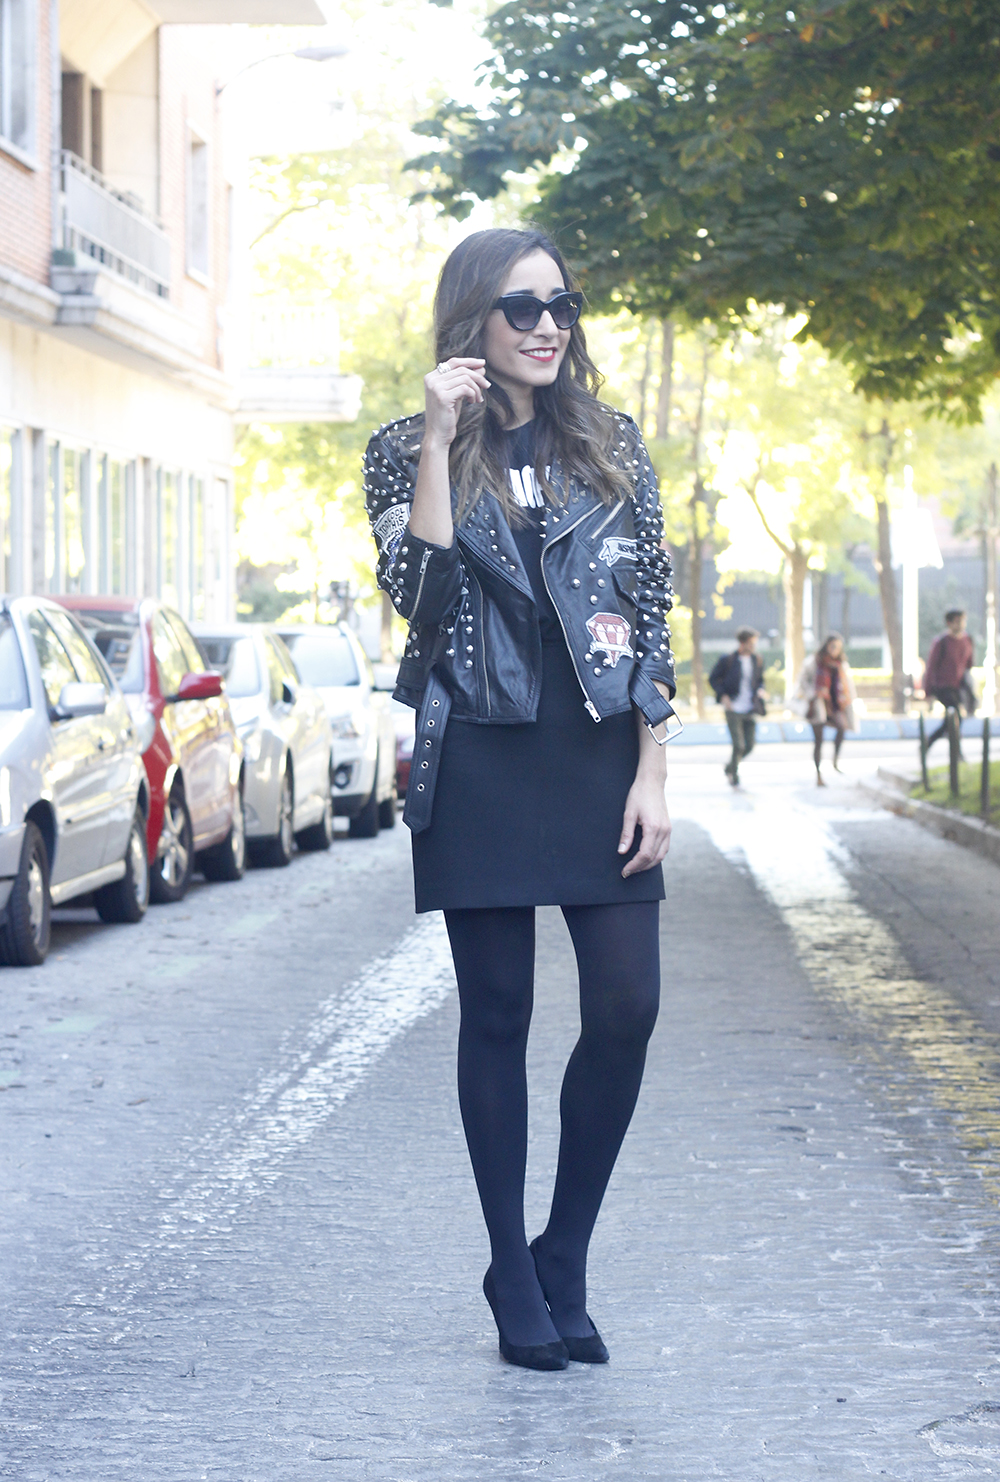 Leather jacket with studs and patches black skirt heels style fashion outfit01